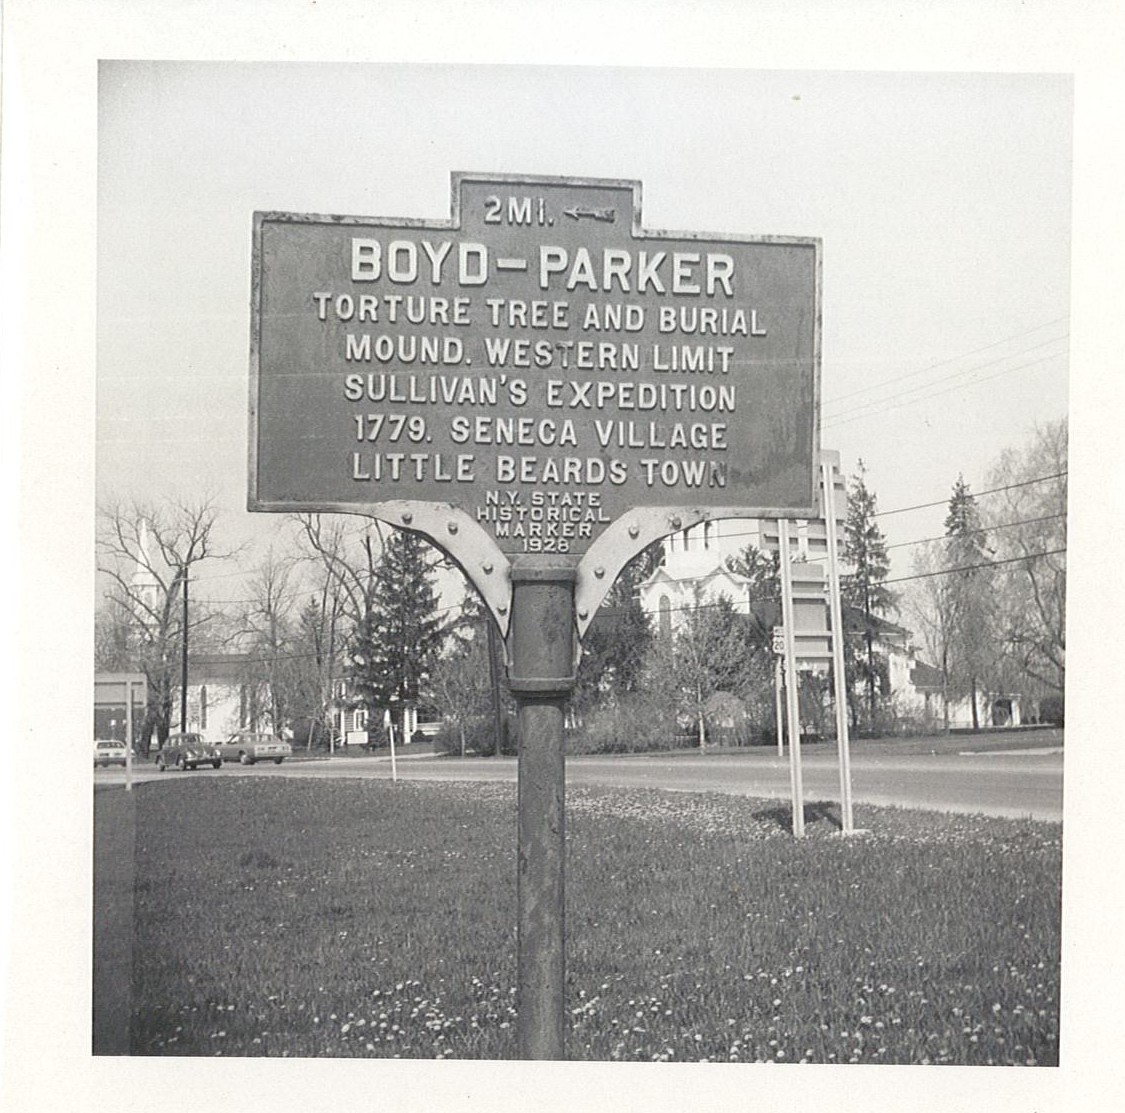 New york livingston county leicester - Boyd Parker Memorial Site Town Of Leicester